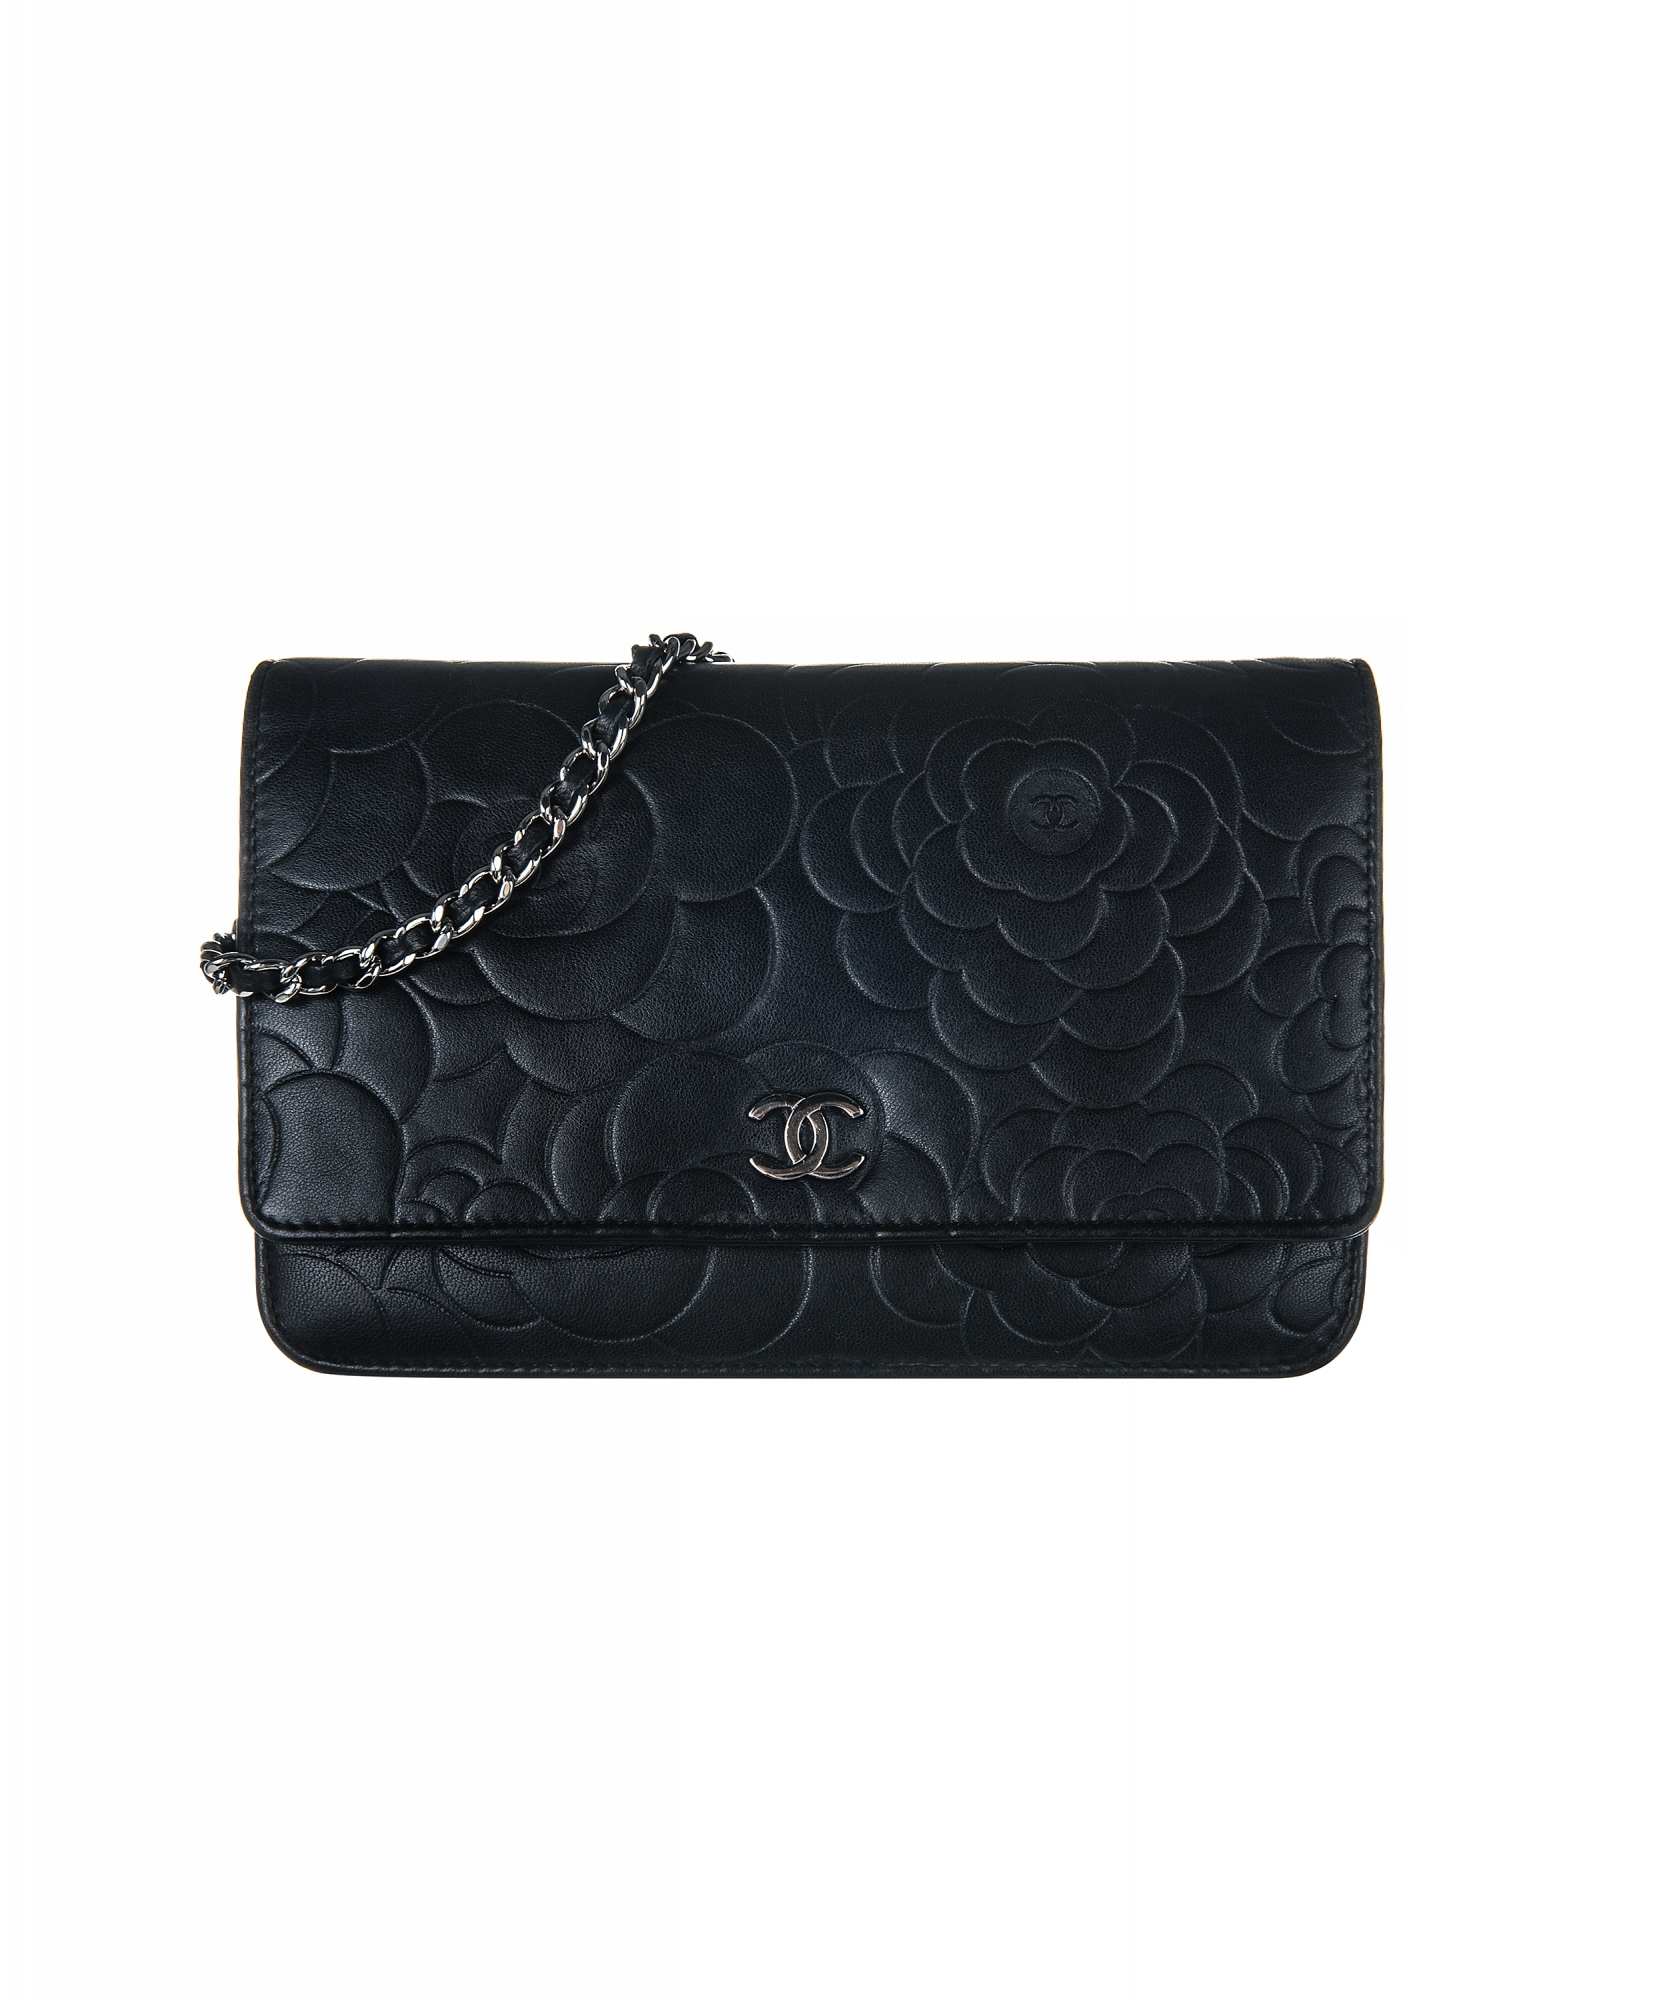 185bd21a9e89 ... Chanel Camellia Wallet On Chain WOC Bag. Touch to zoom